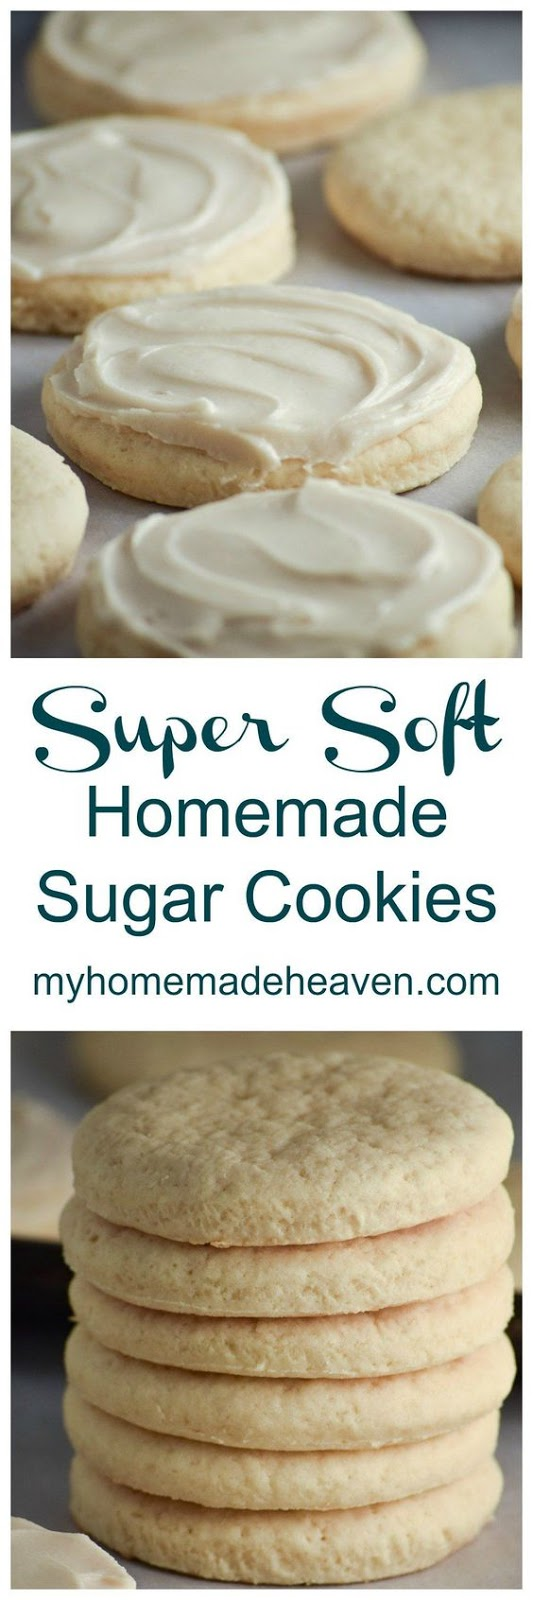 SUPER SOFT HOMEMADE SUGAR COOKIES    #DESSERTS #HEALTHYFOOD #EASYRECIPES #DINNER #LAUCH #DELICIOUS #EASY #HOLIDAYS #RECIPE #SPECIALDIET #WORLDCUISINE #CAKE #APPETIZERS #HEALTHYRECIPES #DRINKS #COOKINGMETHOD #ITALIANRECIPES #MEAT #VEGANRECIPES #COOKIES #PASTA #FRUIT #SALAD #SOUPAPPETIZERS #NONALCOHOLICDRINKS #MEALPLANNING #VEGETABLES #SOUP #PASTRY #CHOCOLATE #DAIRY #ALCOHOLICDRINKS #BULGURSALAD #BAKING #SNACKS #BEEFRECIPES #MEATAPPETIZERS #MEXICANRECIPES #BREAD #ASIANRECIPES #SEAFOODAPPETIZERS #MUFFINS #BREAKFASTANDBRUNCH #CONDIMENTS #CUPCAKES #CHEESE #CHICKENRECIPES #PIE #COFFEE #NOBAKEDESSERTS #HEALTHYSNACKS #SEAFOOD #GRAIN #LUNCHESDINNERS #MEXICAN #QUICKBREAD #LIQUOR